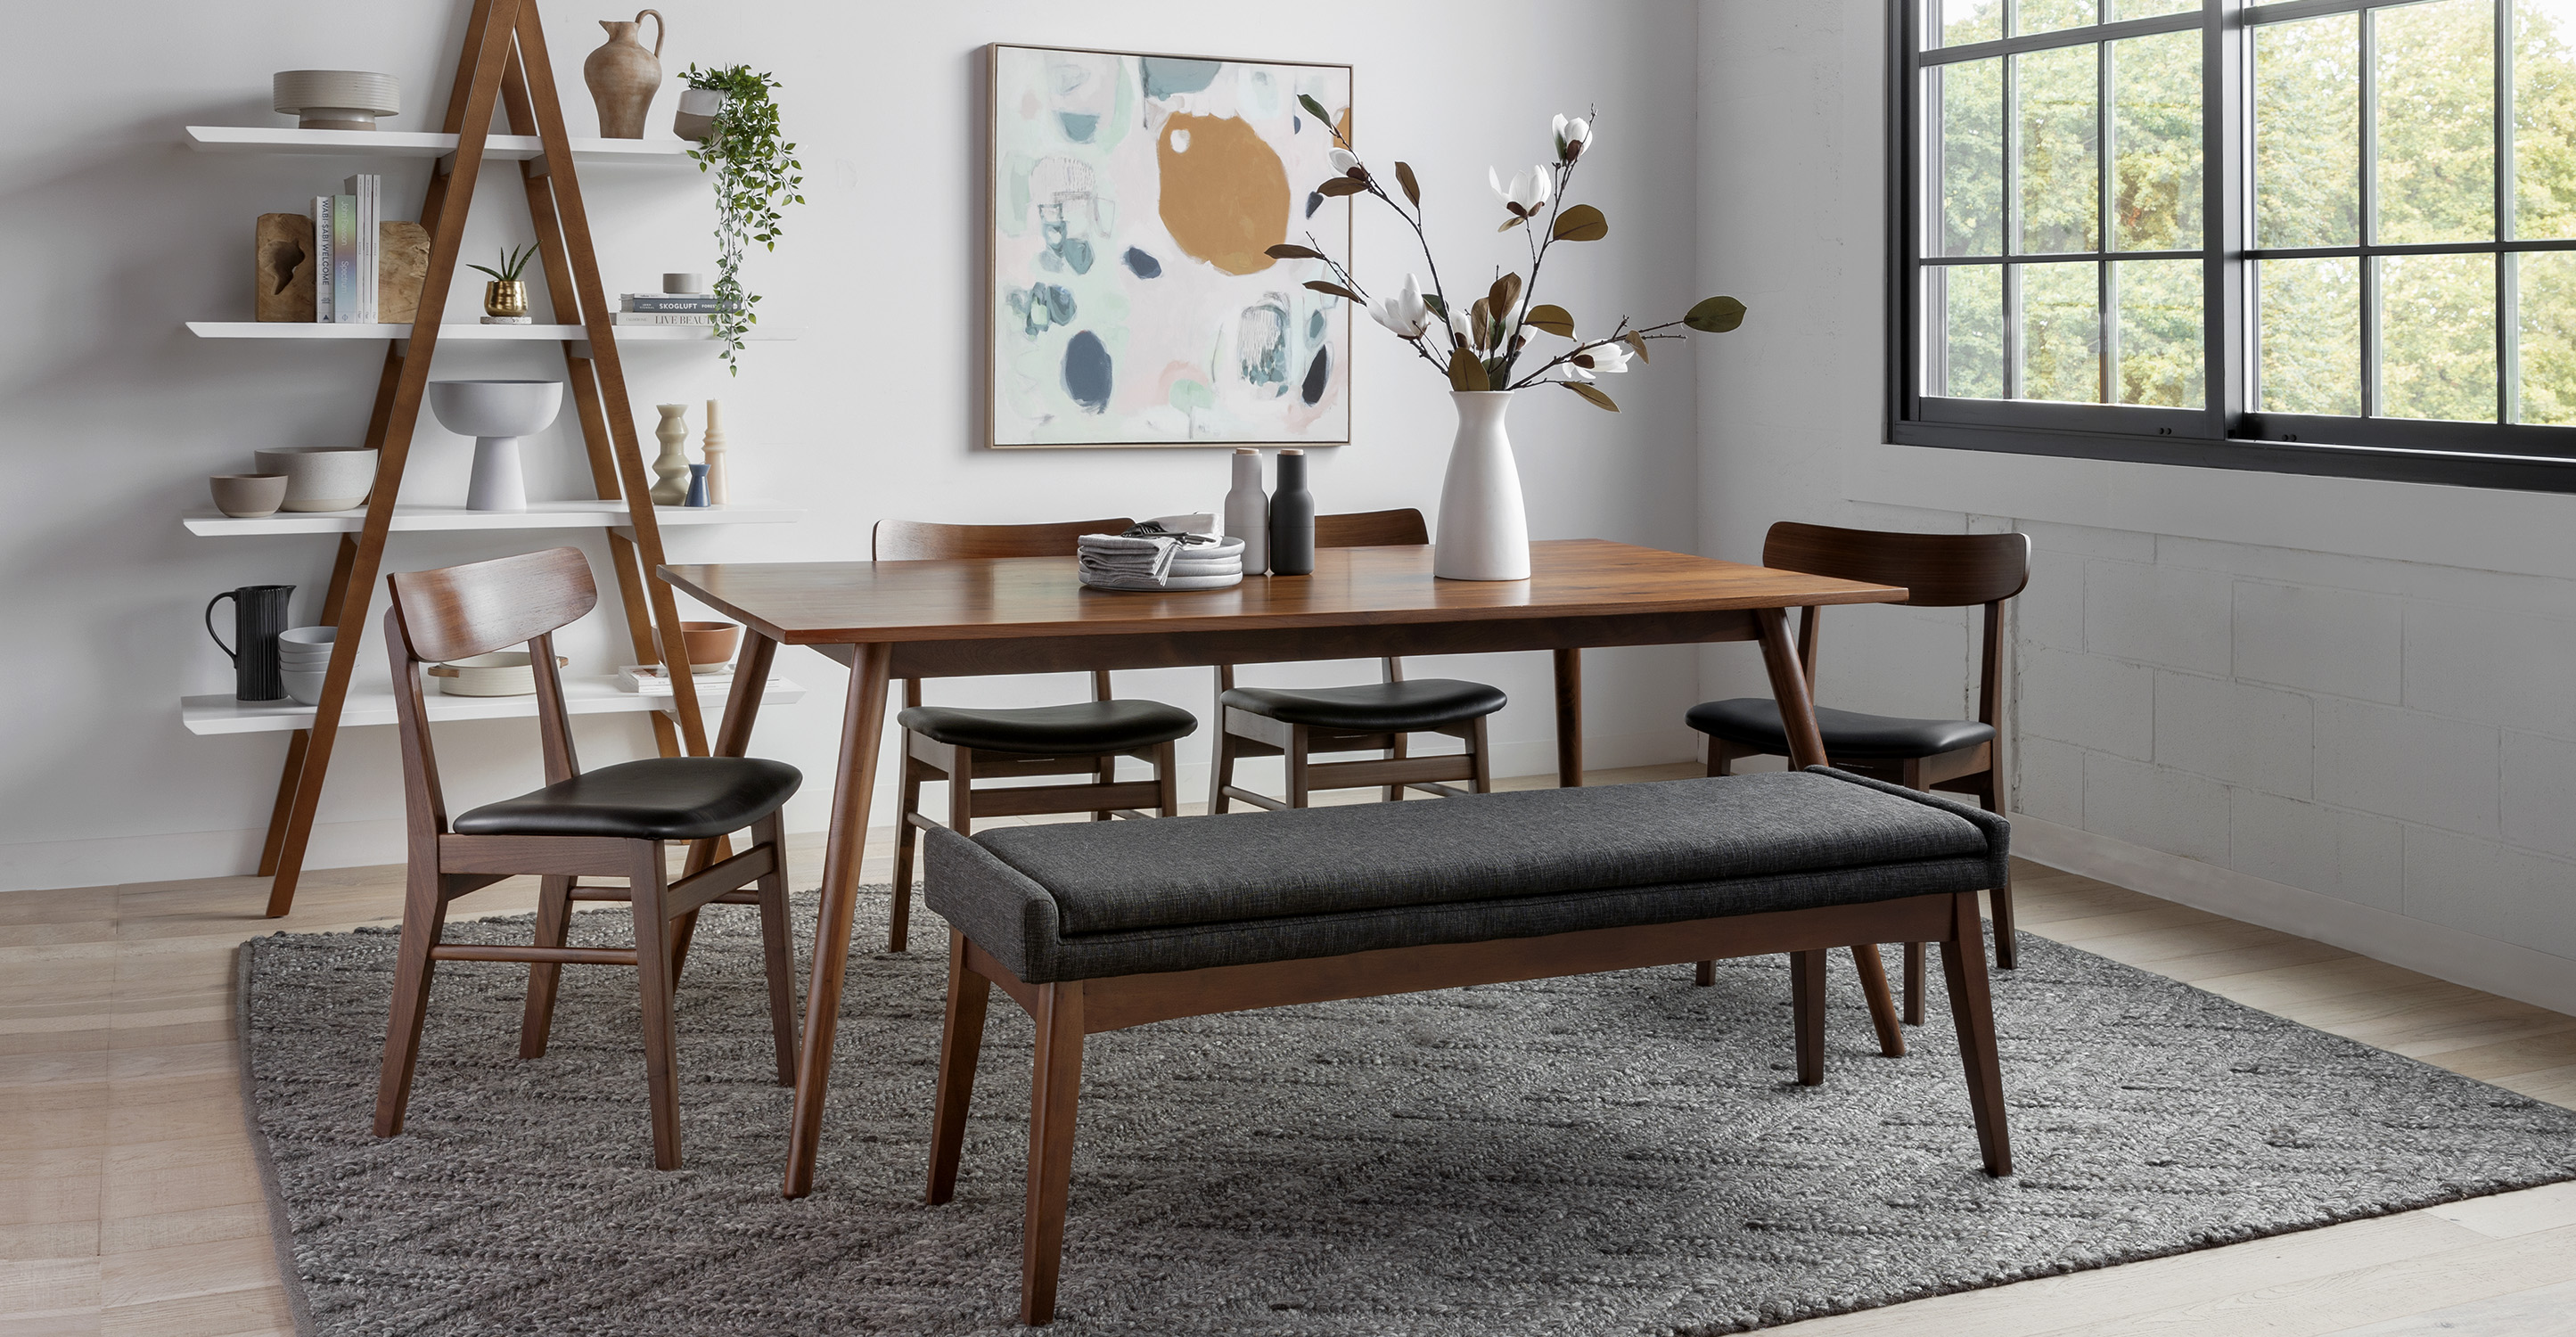 Black Leather Dining Chair, Walnut Dining Room